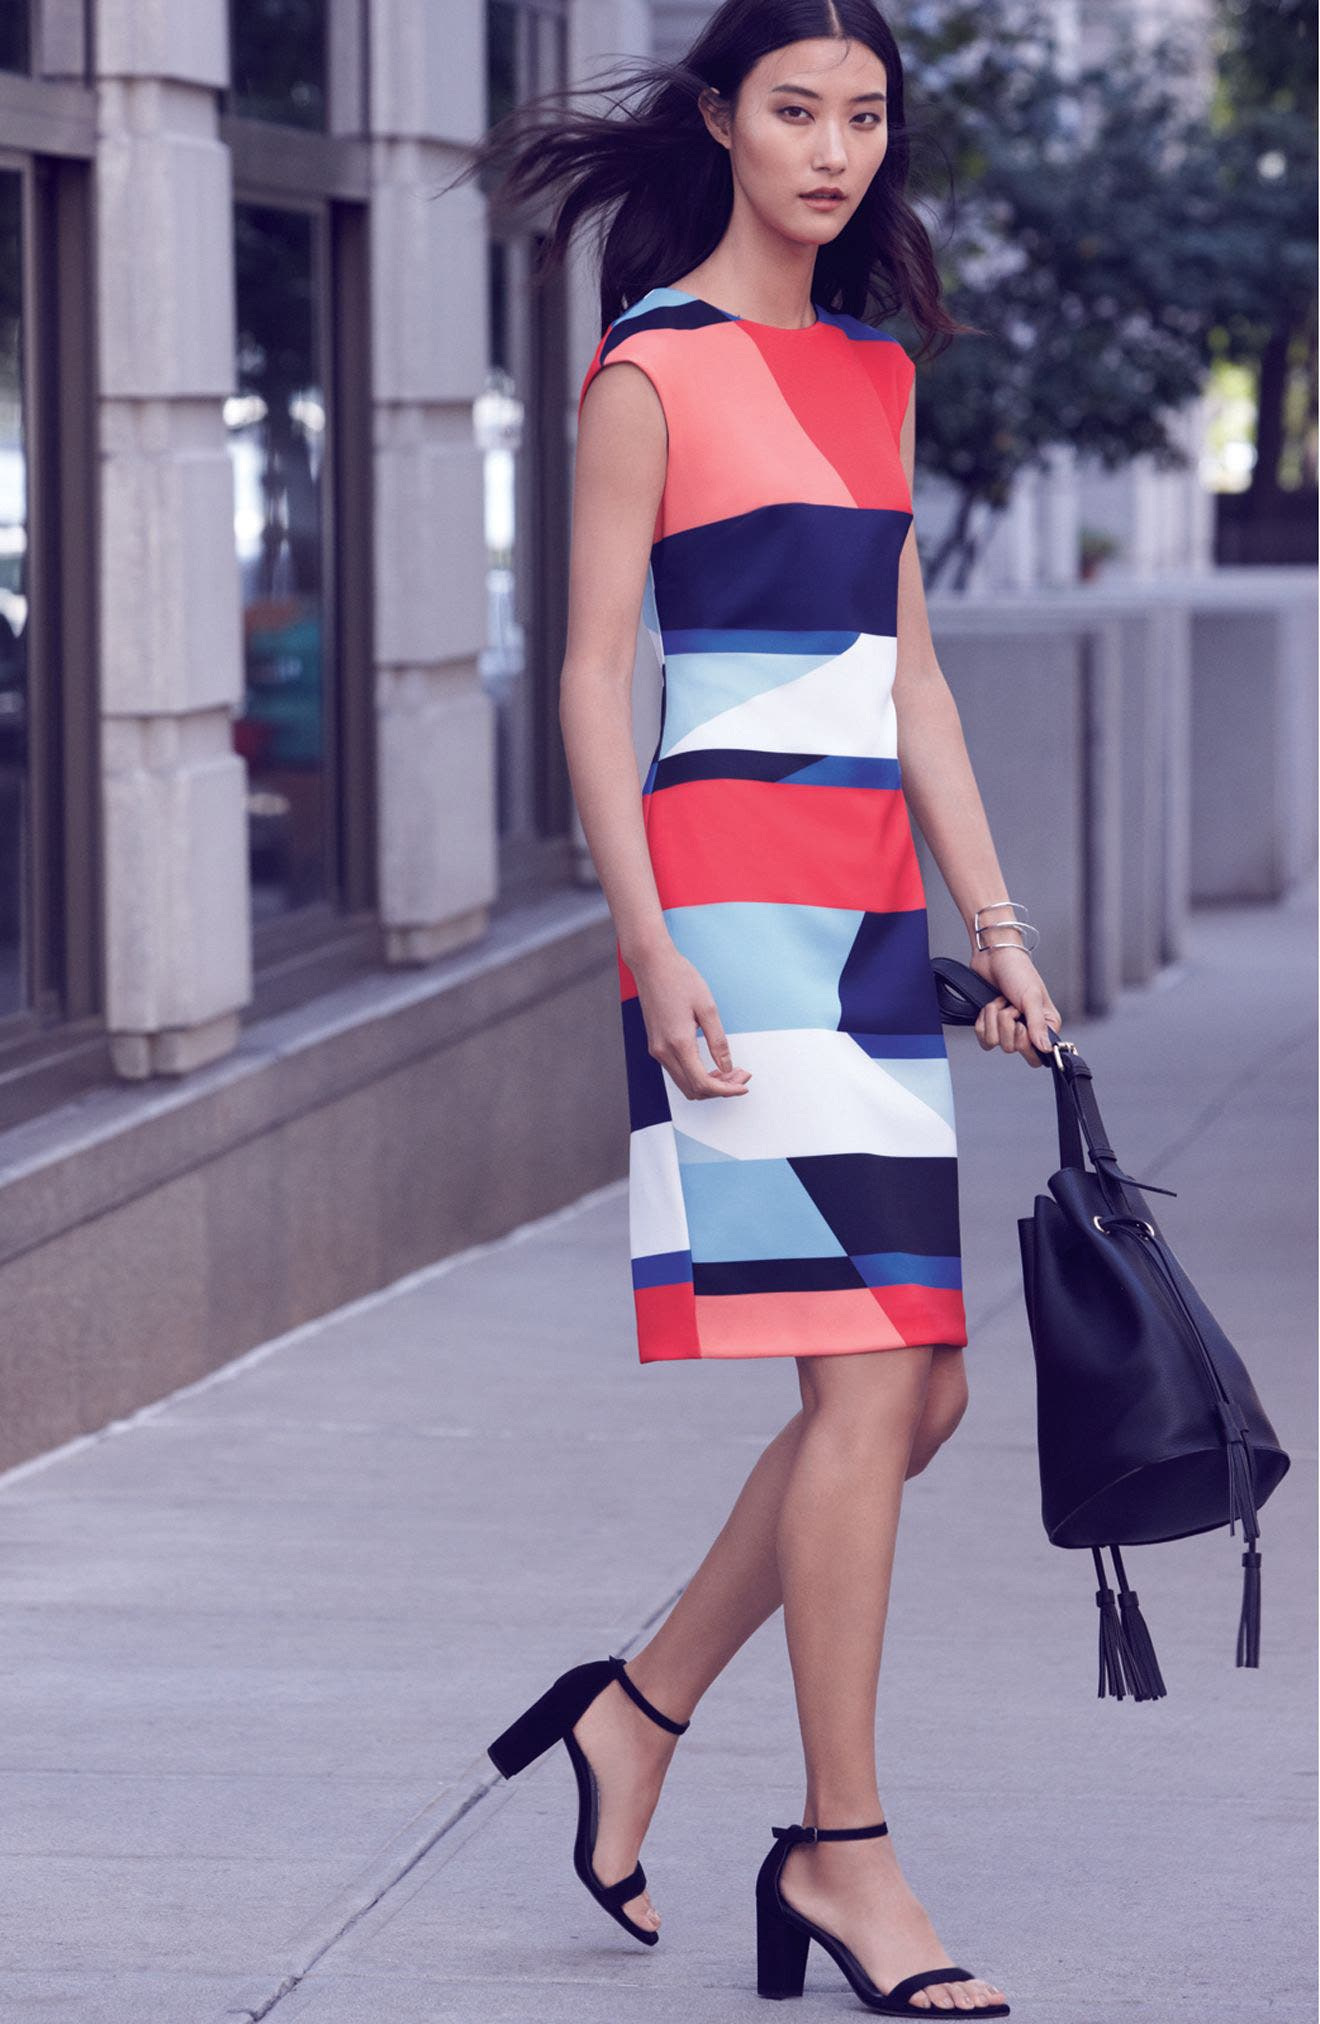 Vince Camuto Dress with Accessories